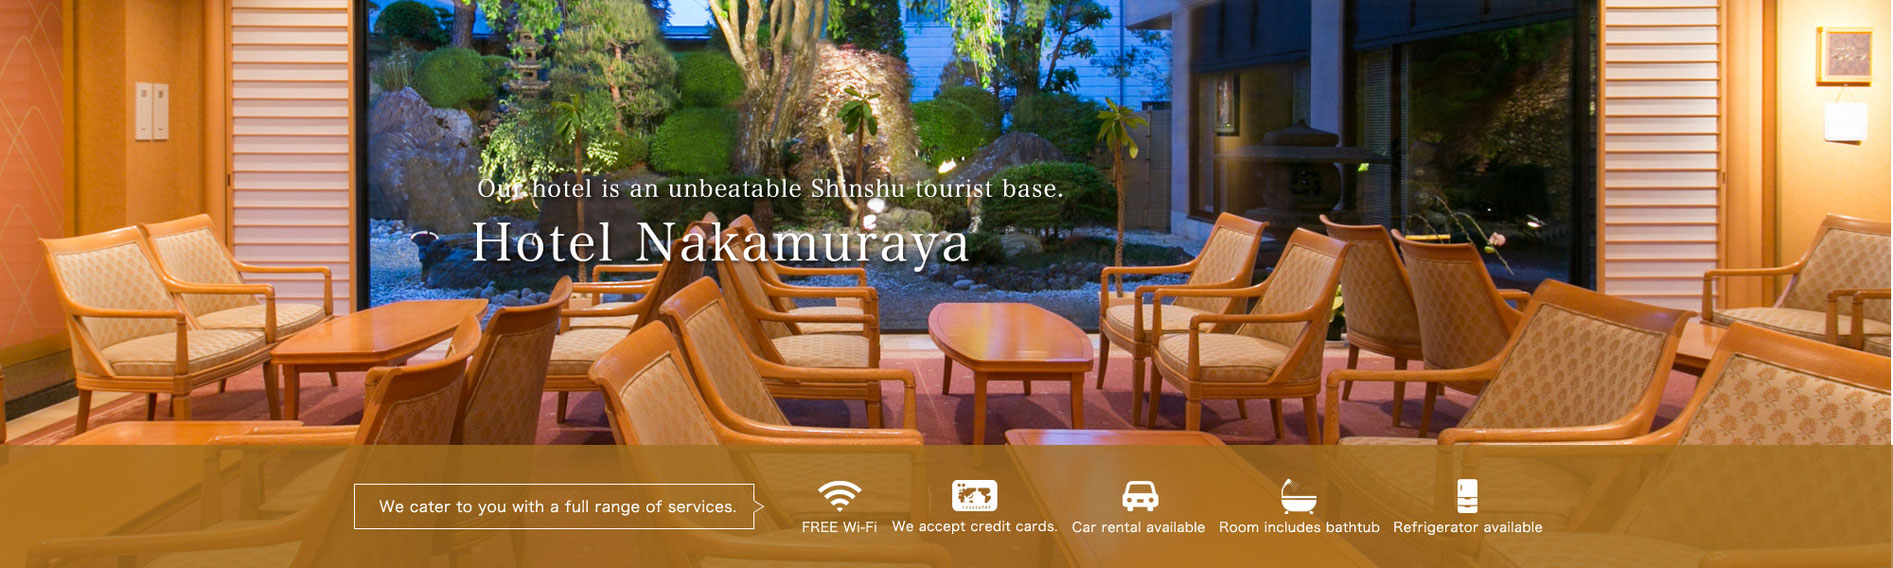 Our hotel is an unbeatable Shinshu tourist base. Hotel Nakamuraya. We cater to you with a full range of services.